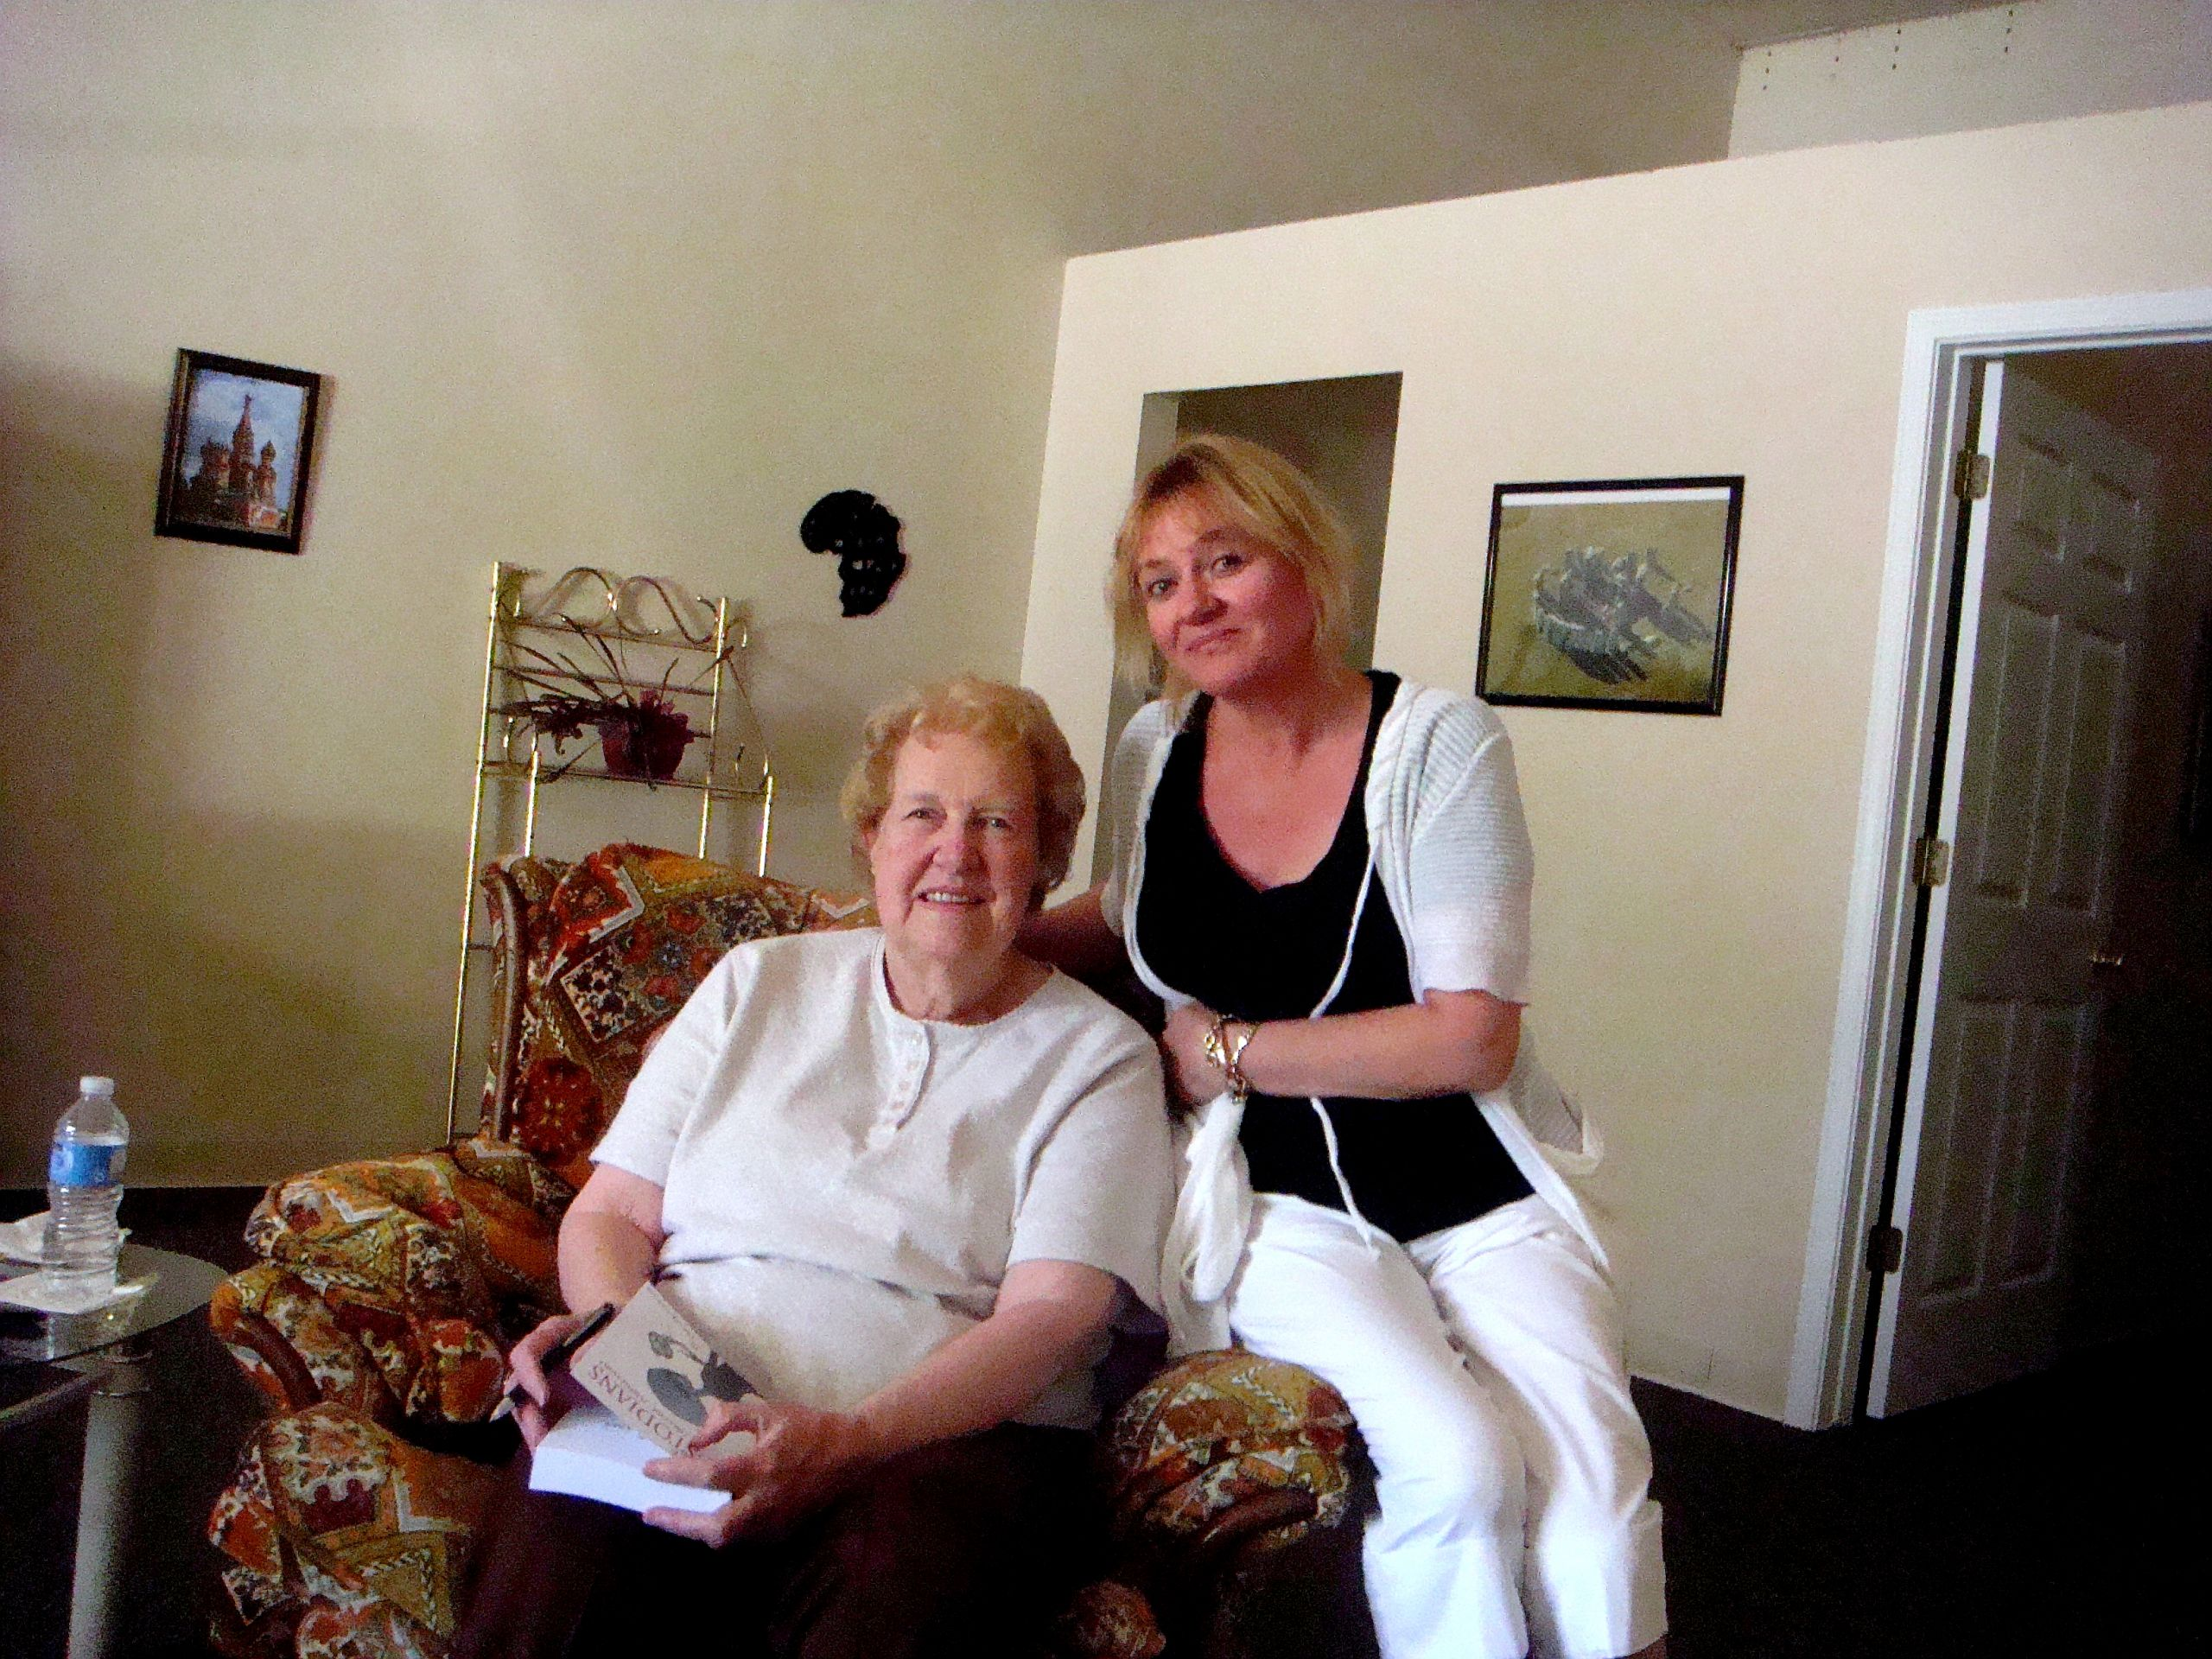 Dolores Cannon and Agnes post Certification For QHHT Practitioner Level 1 & Level 2 in 2011